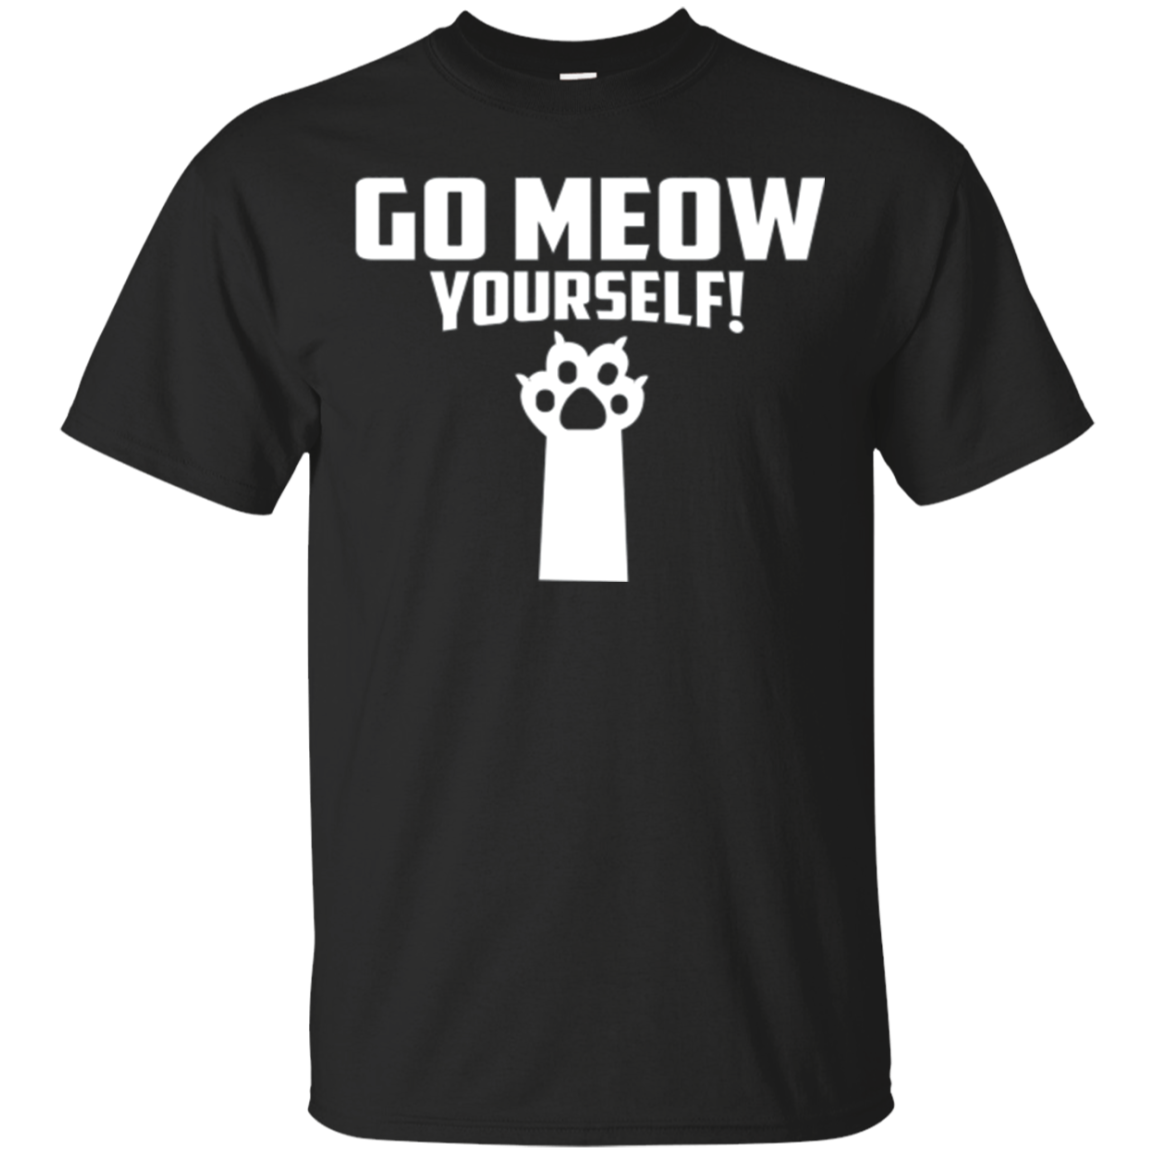 Go Meow Yourself